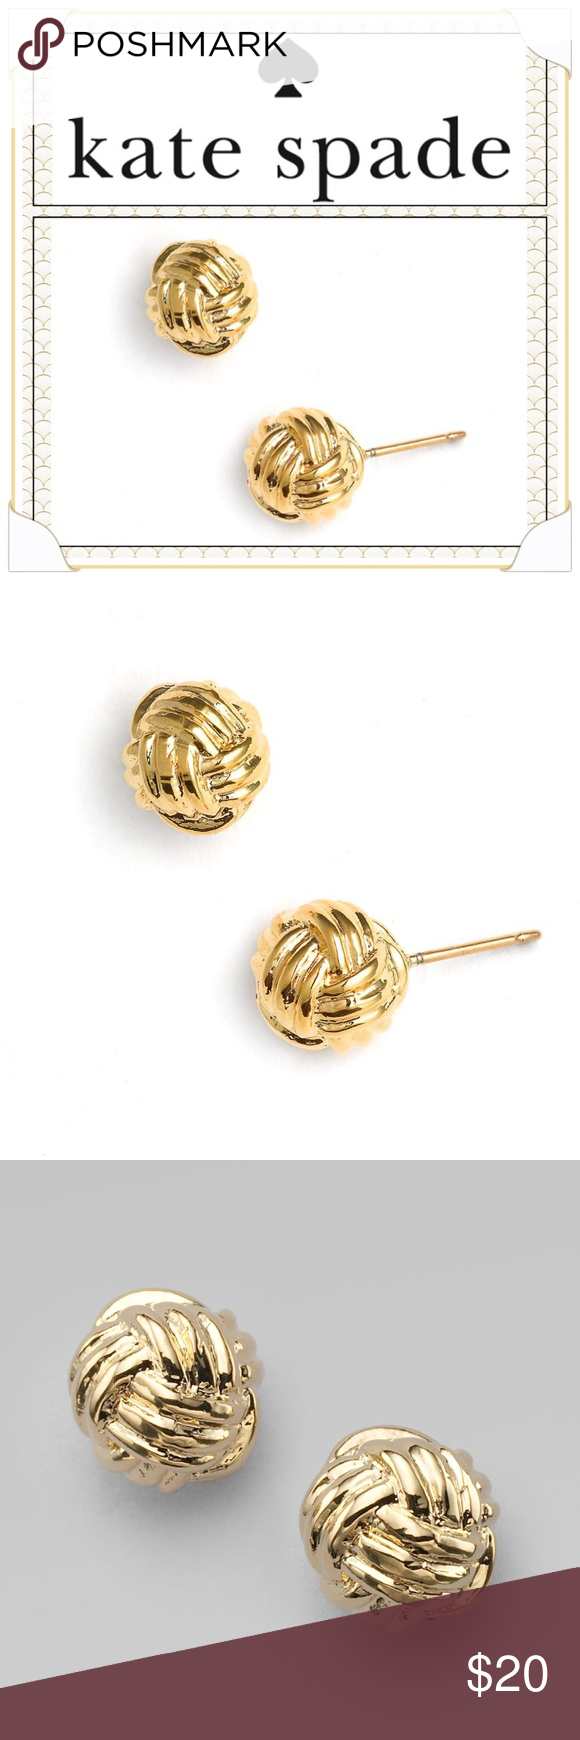 "3209fc42f Kate Spade ""Know the Ropes"" Stud Earrings Deftly knotted stud earrings  exude class in a high-polish finish. Post back. Approx. diameter: 1/4"